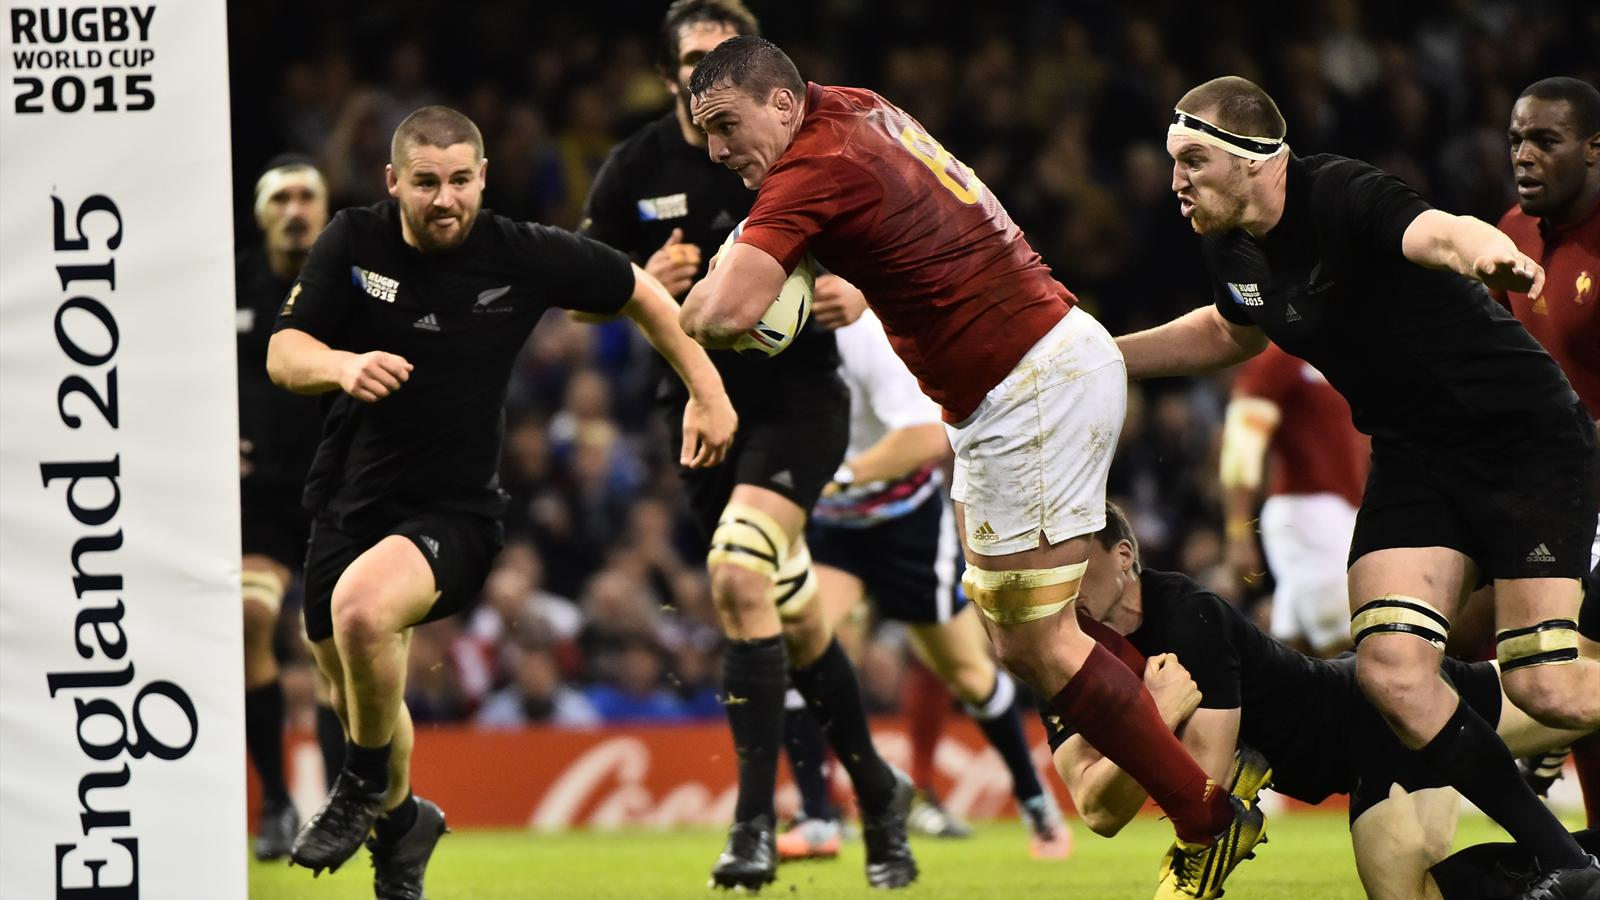 Louis Picamoles (XV de France) face aux All Blacks - 17 octobre 2015